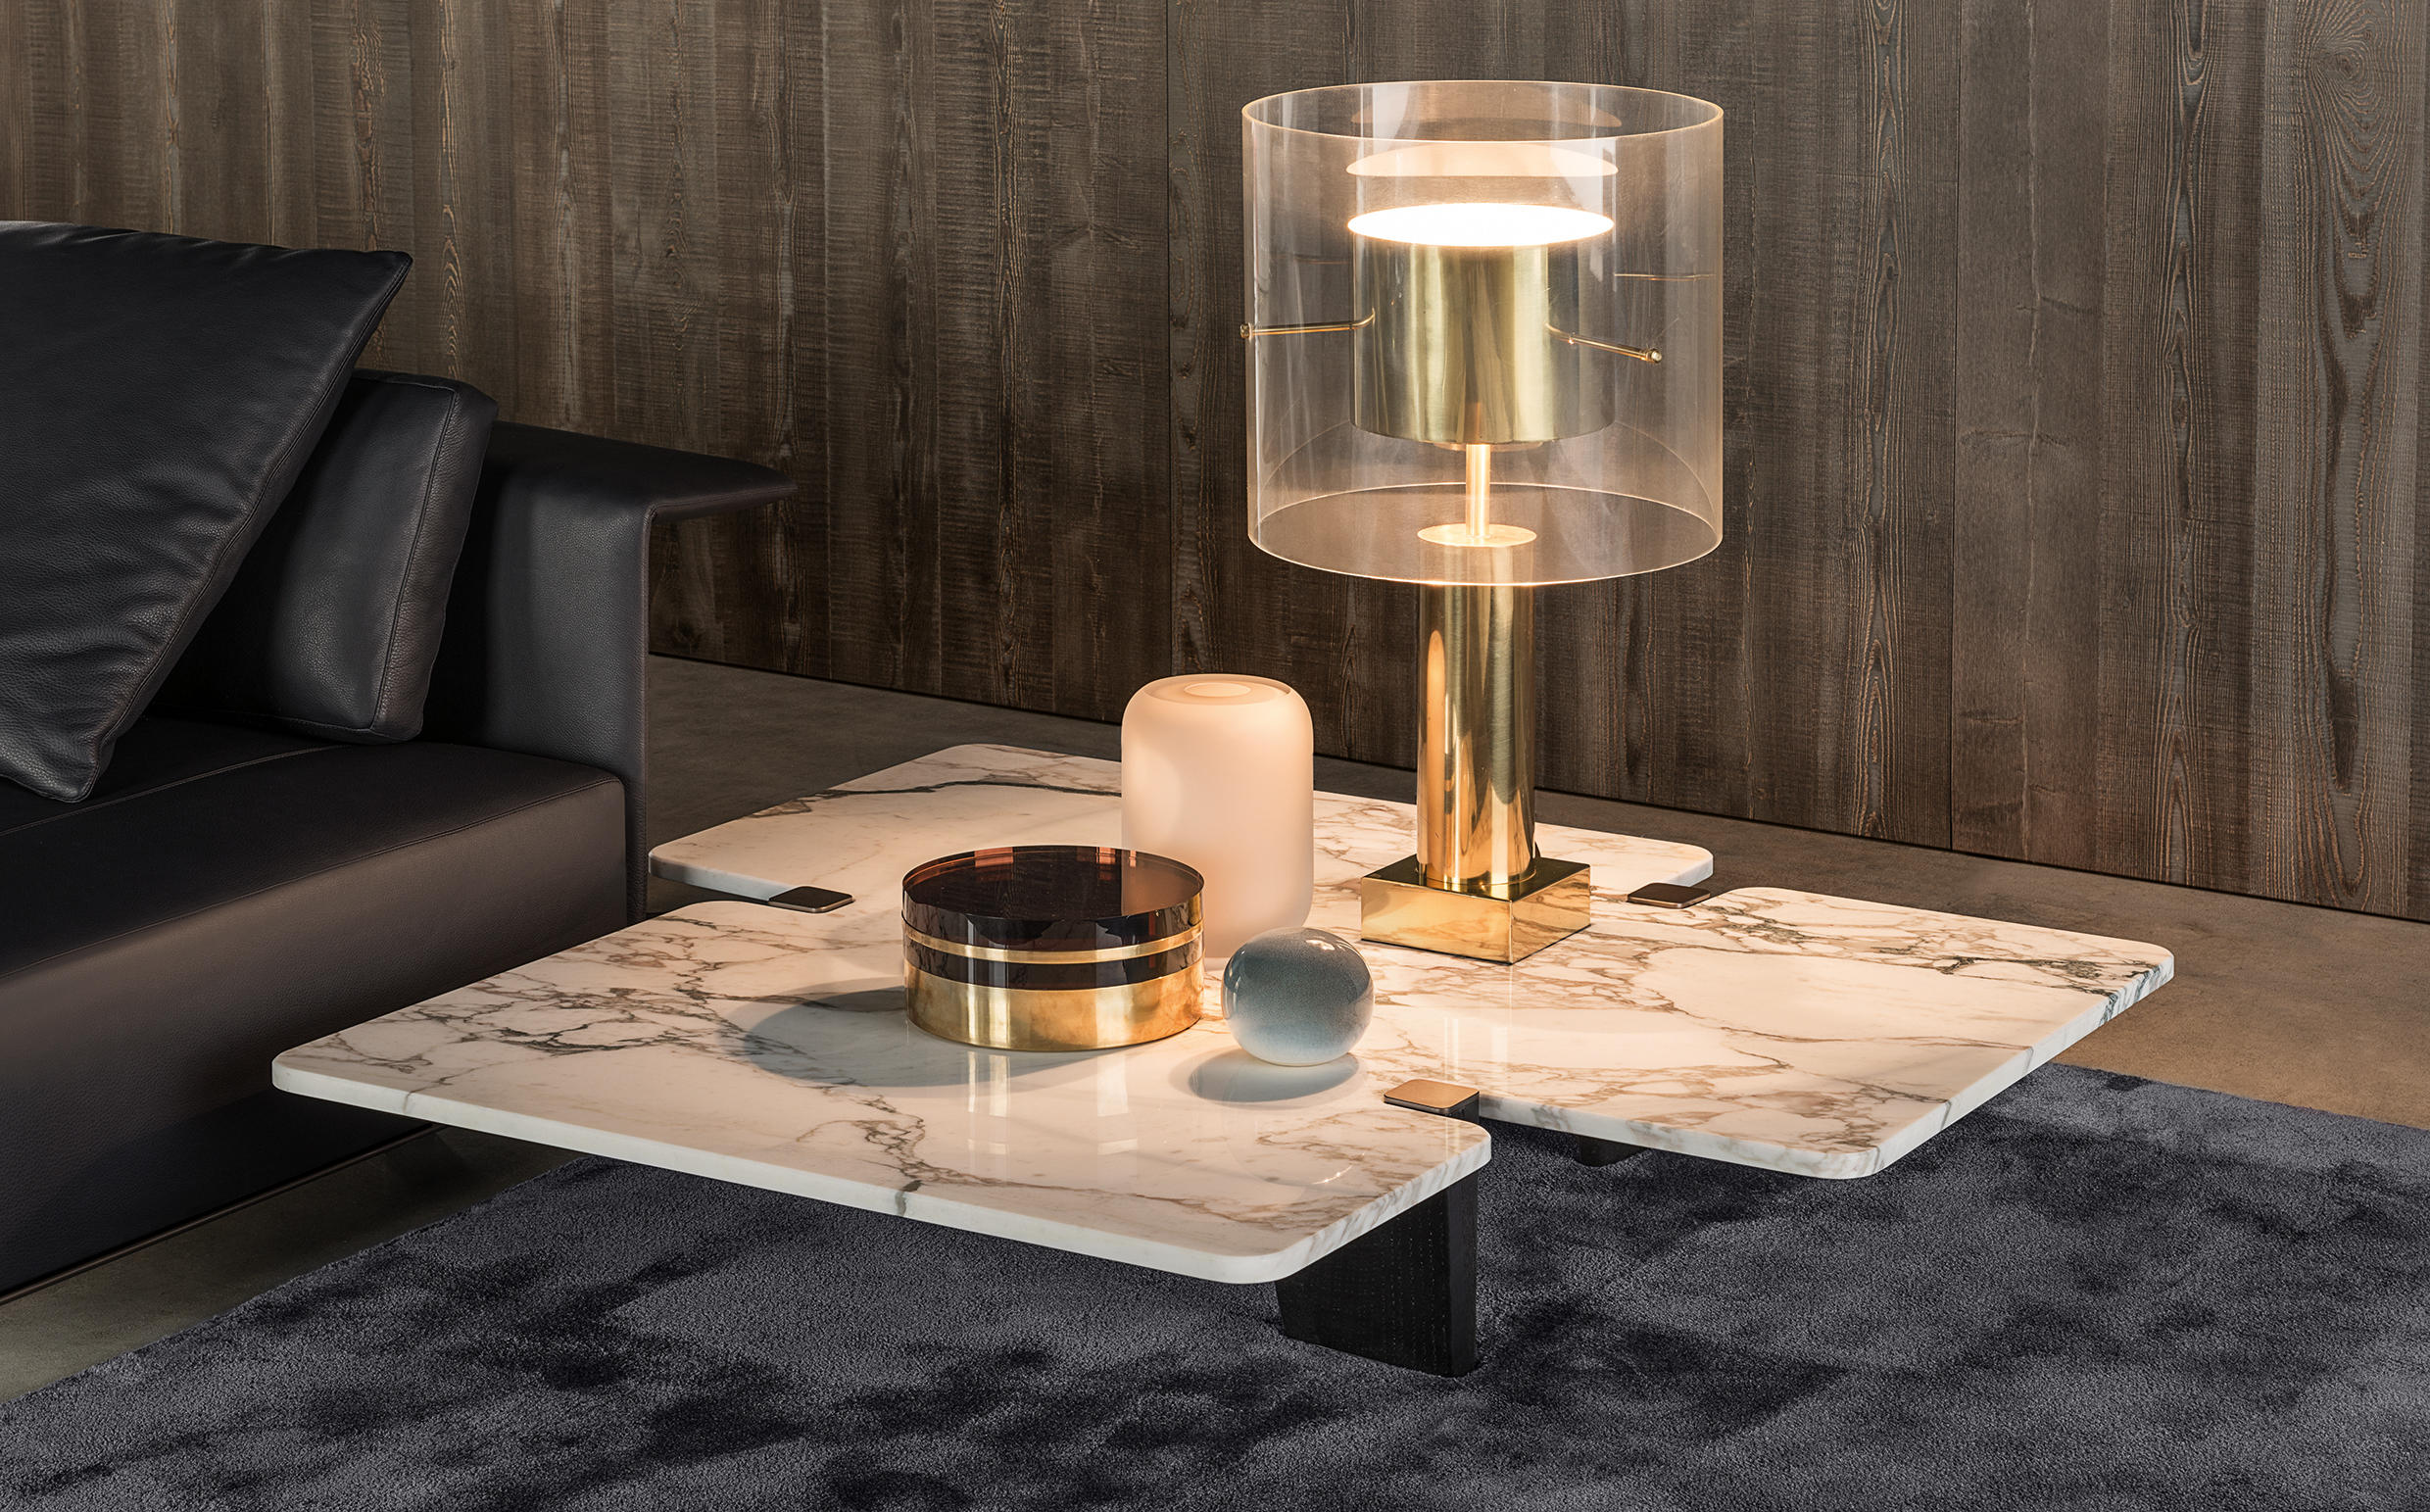 Furniture Gt Coffee Tables Gt Jacob Minotti Coffee Table Jacob